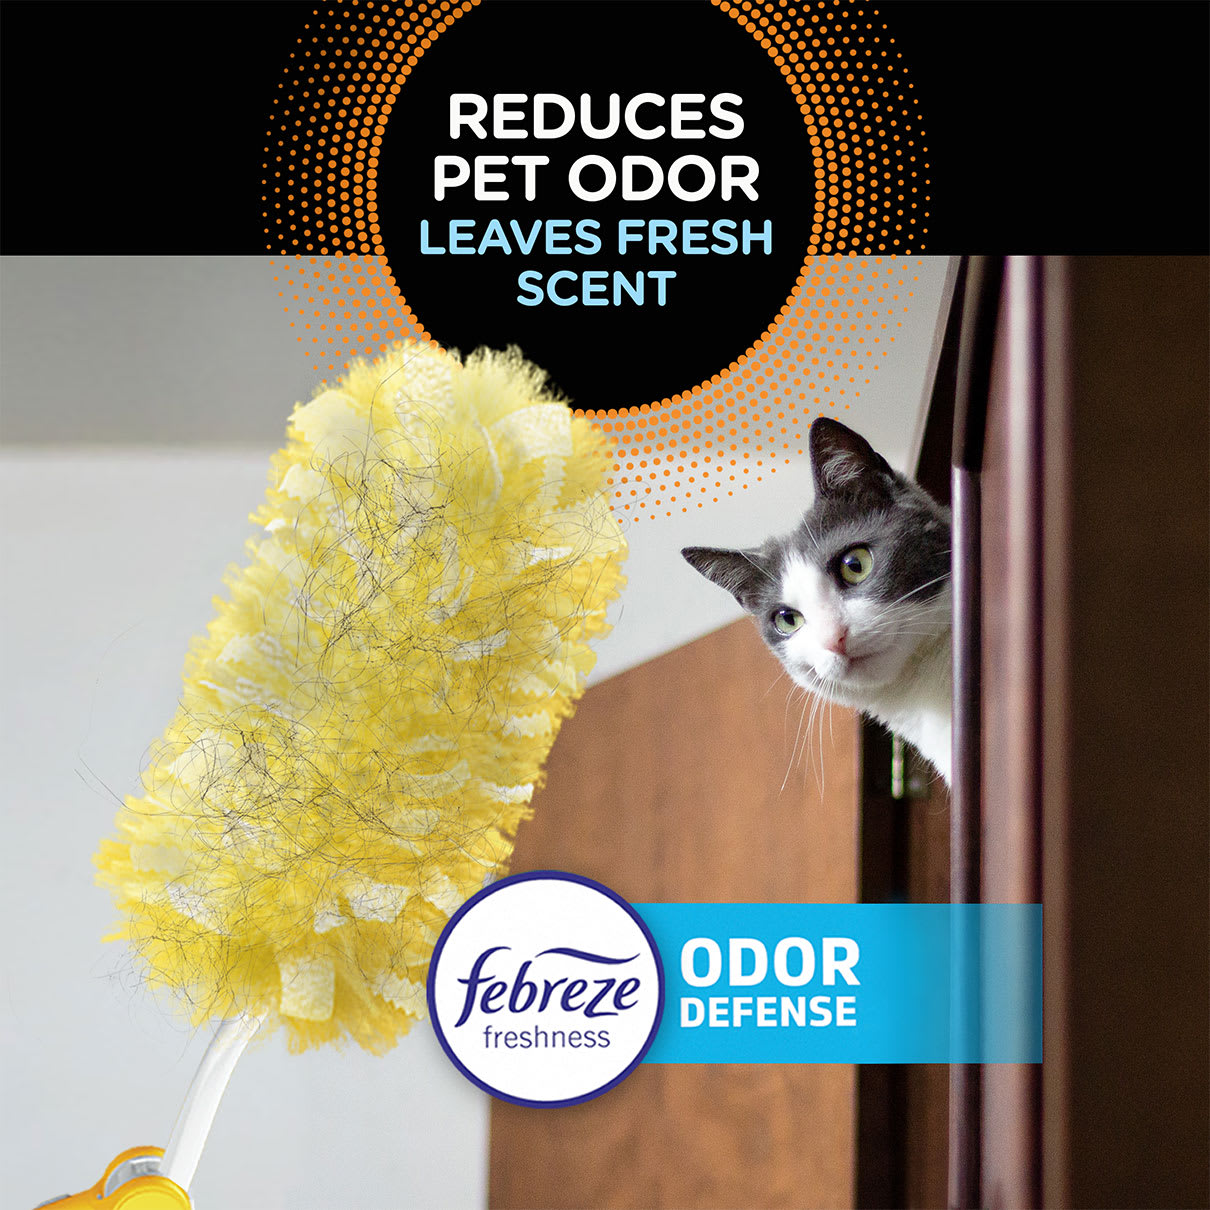 Swiffer Duster Reduces Pet Odor and Leaves Fresh Scent